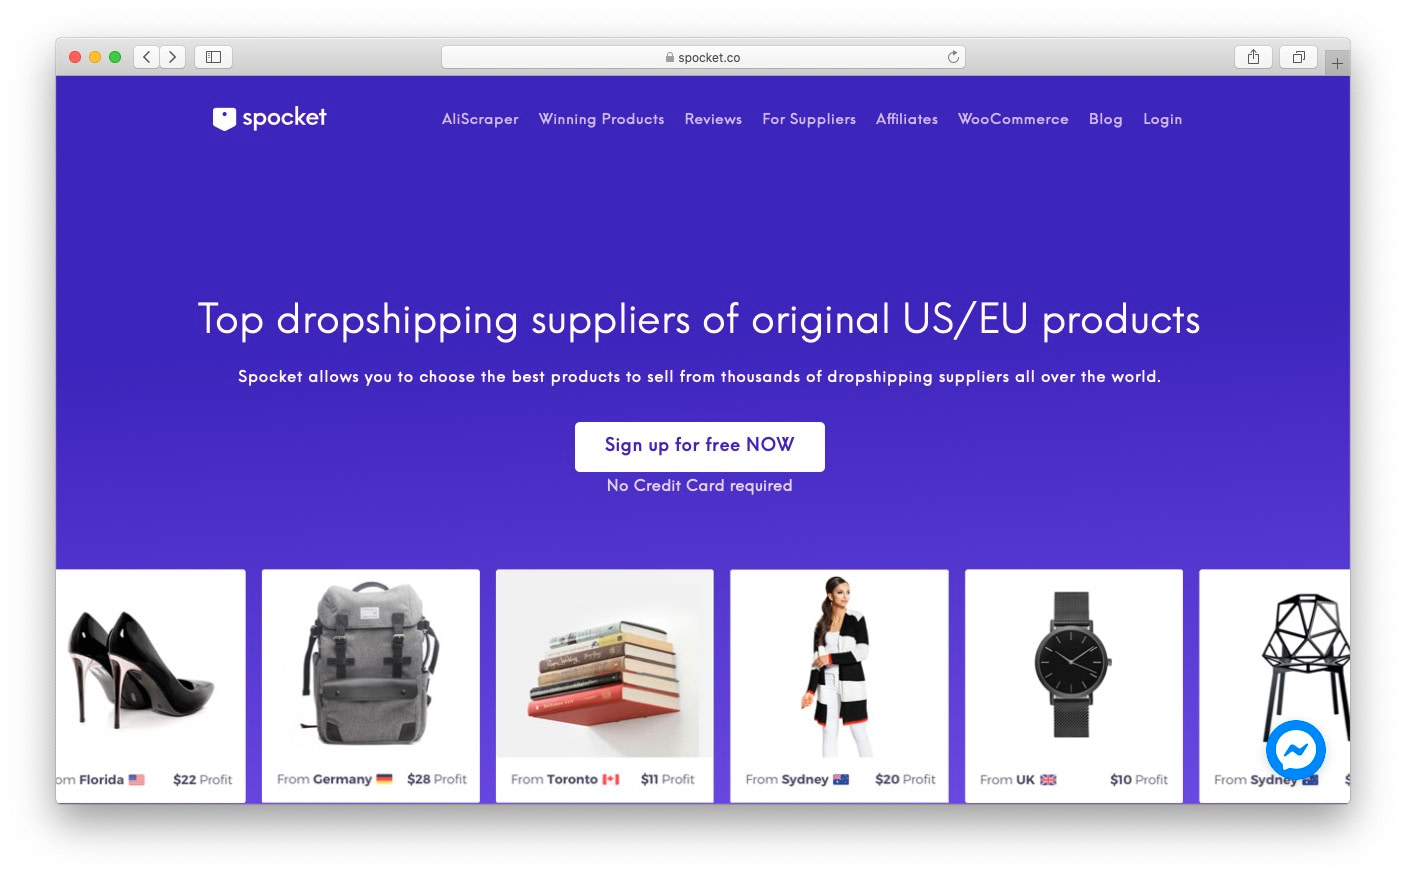 30 Best eCommerce Tools to Get Your Business Off the Ground